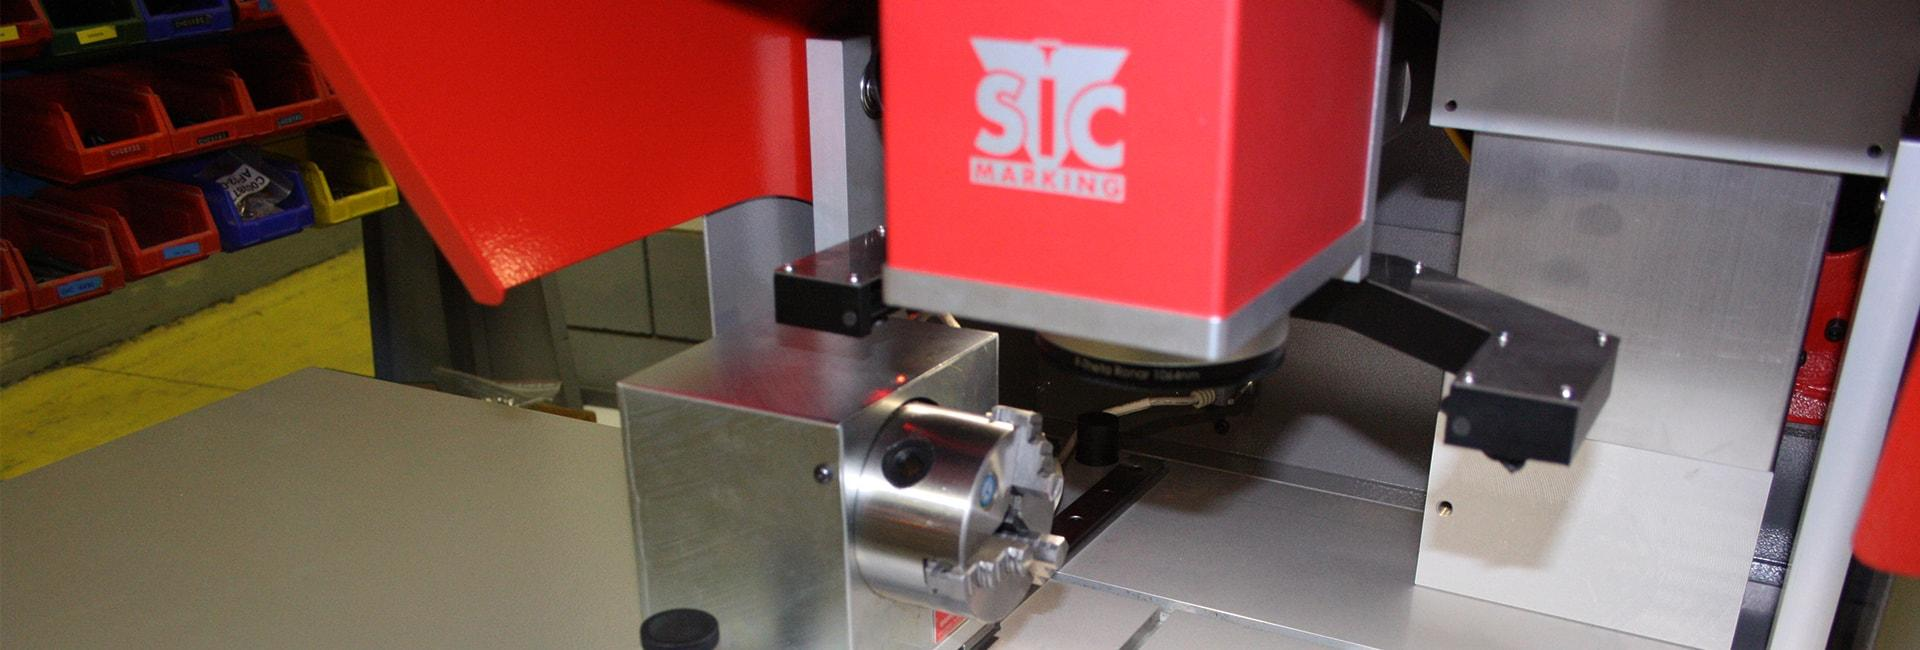 Laser Marking Of Cylindrical Parts Sic Marking